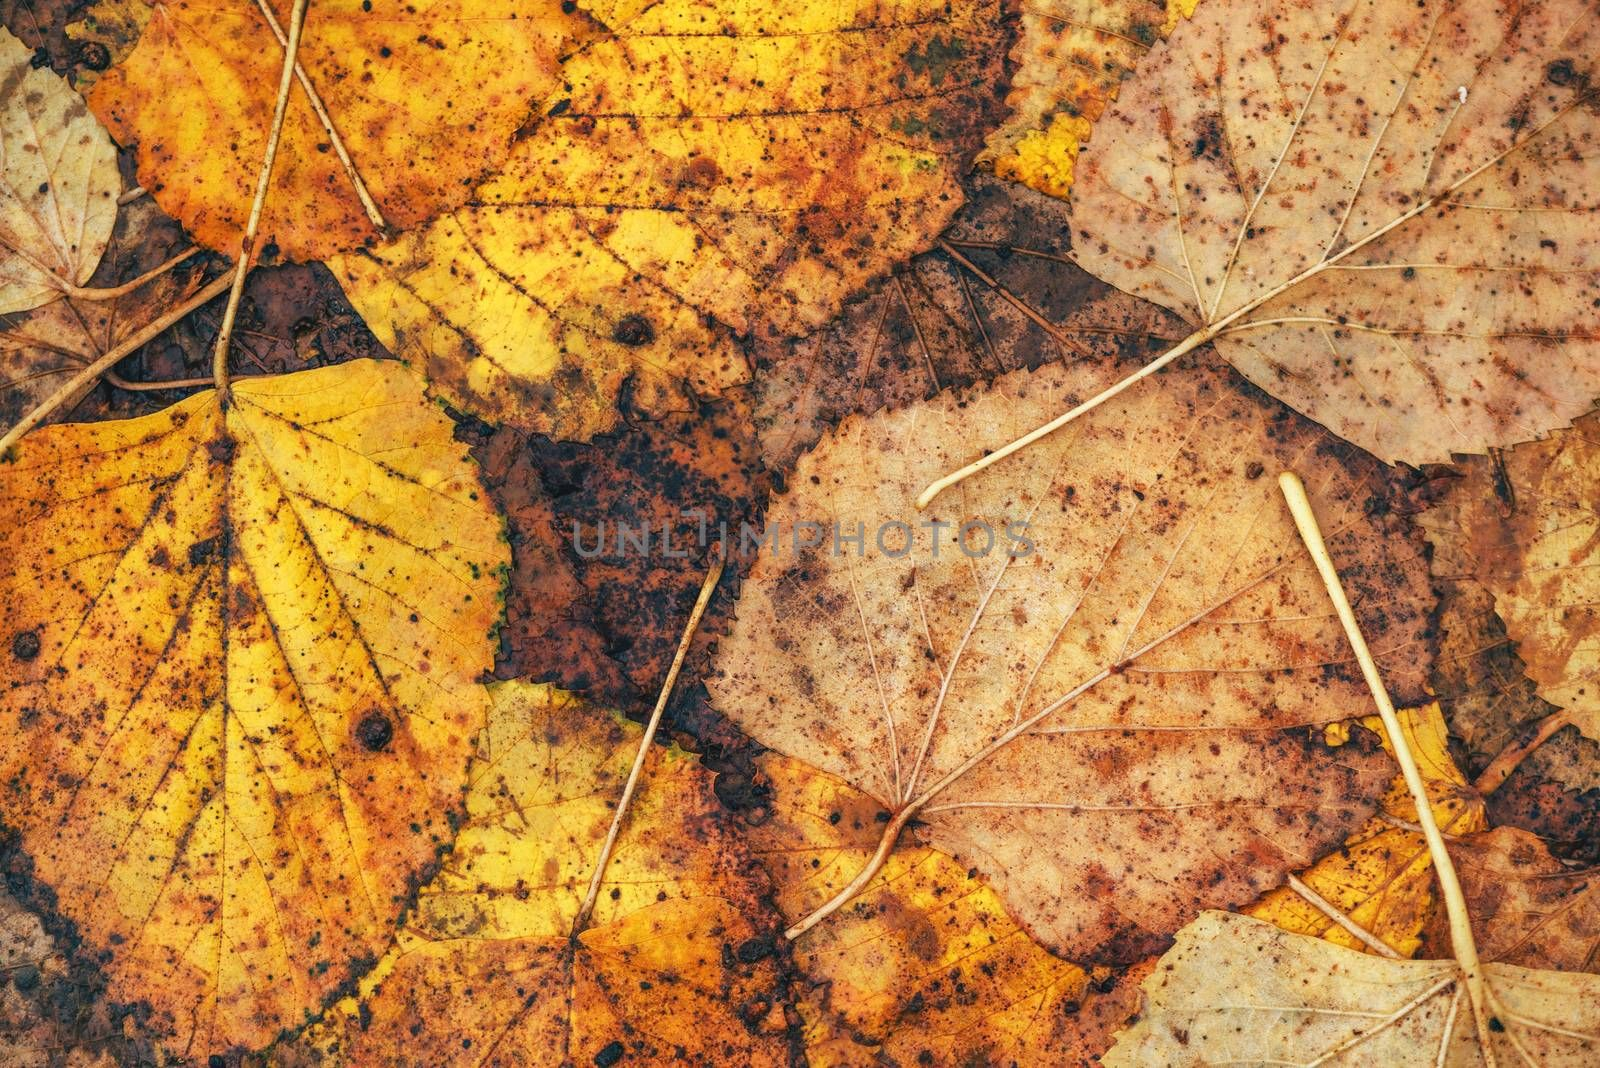 Wet autumn leaves on the ground as background, fall season texture